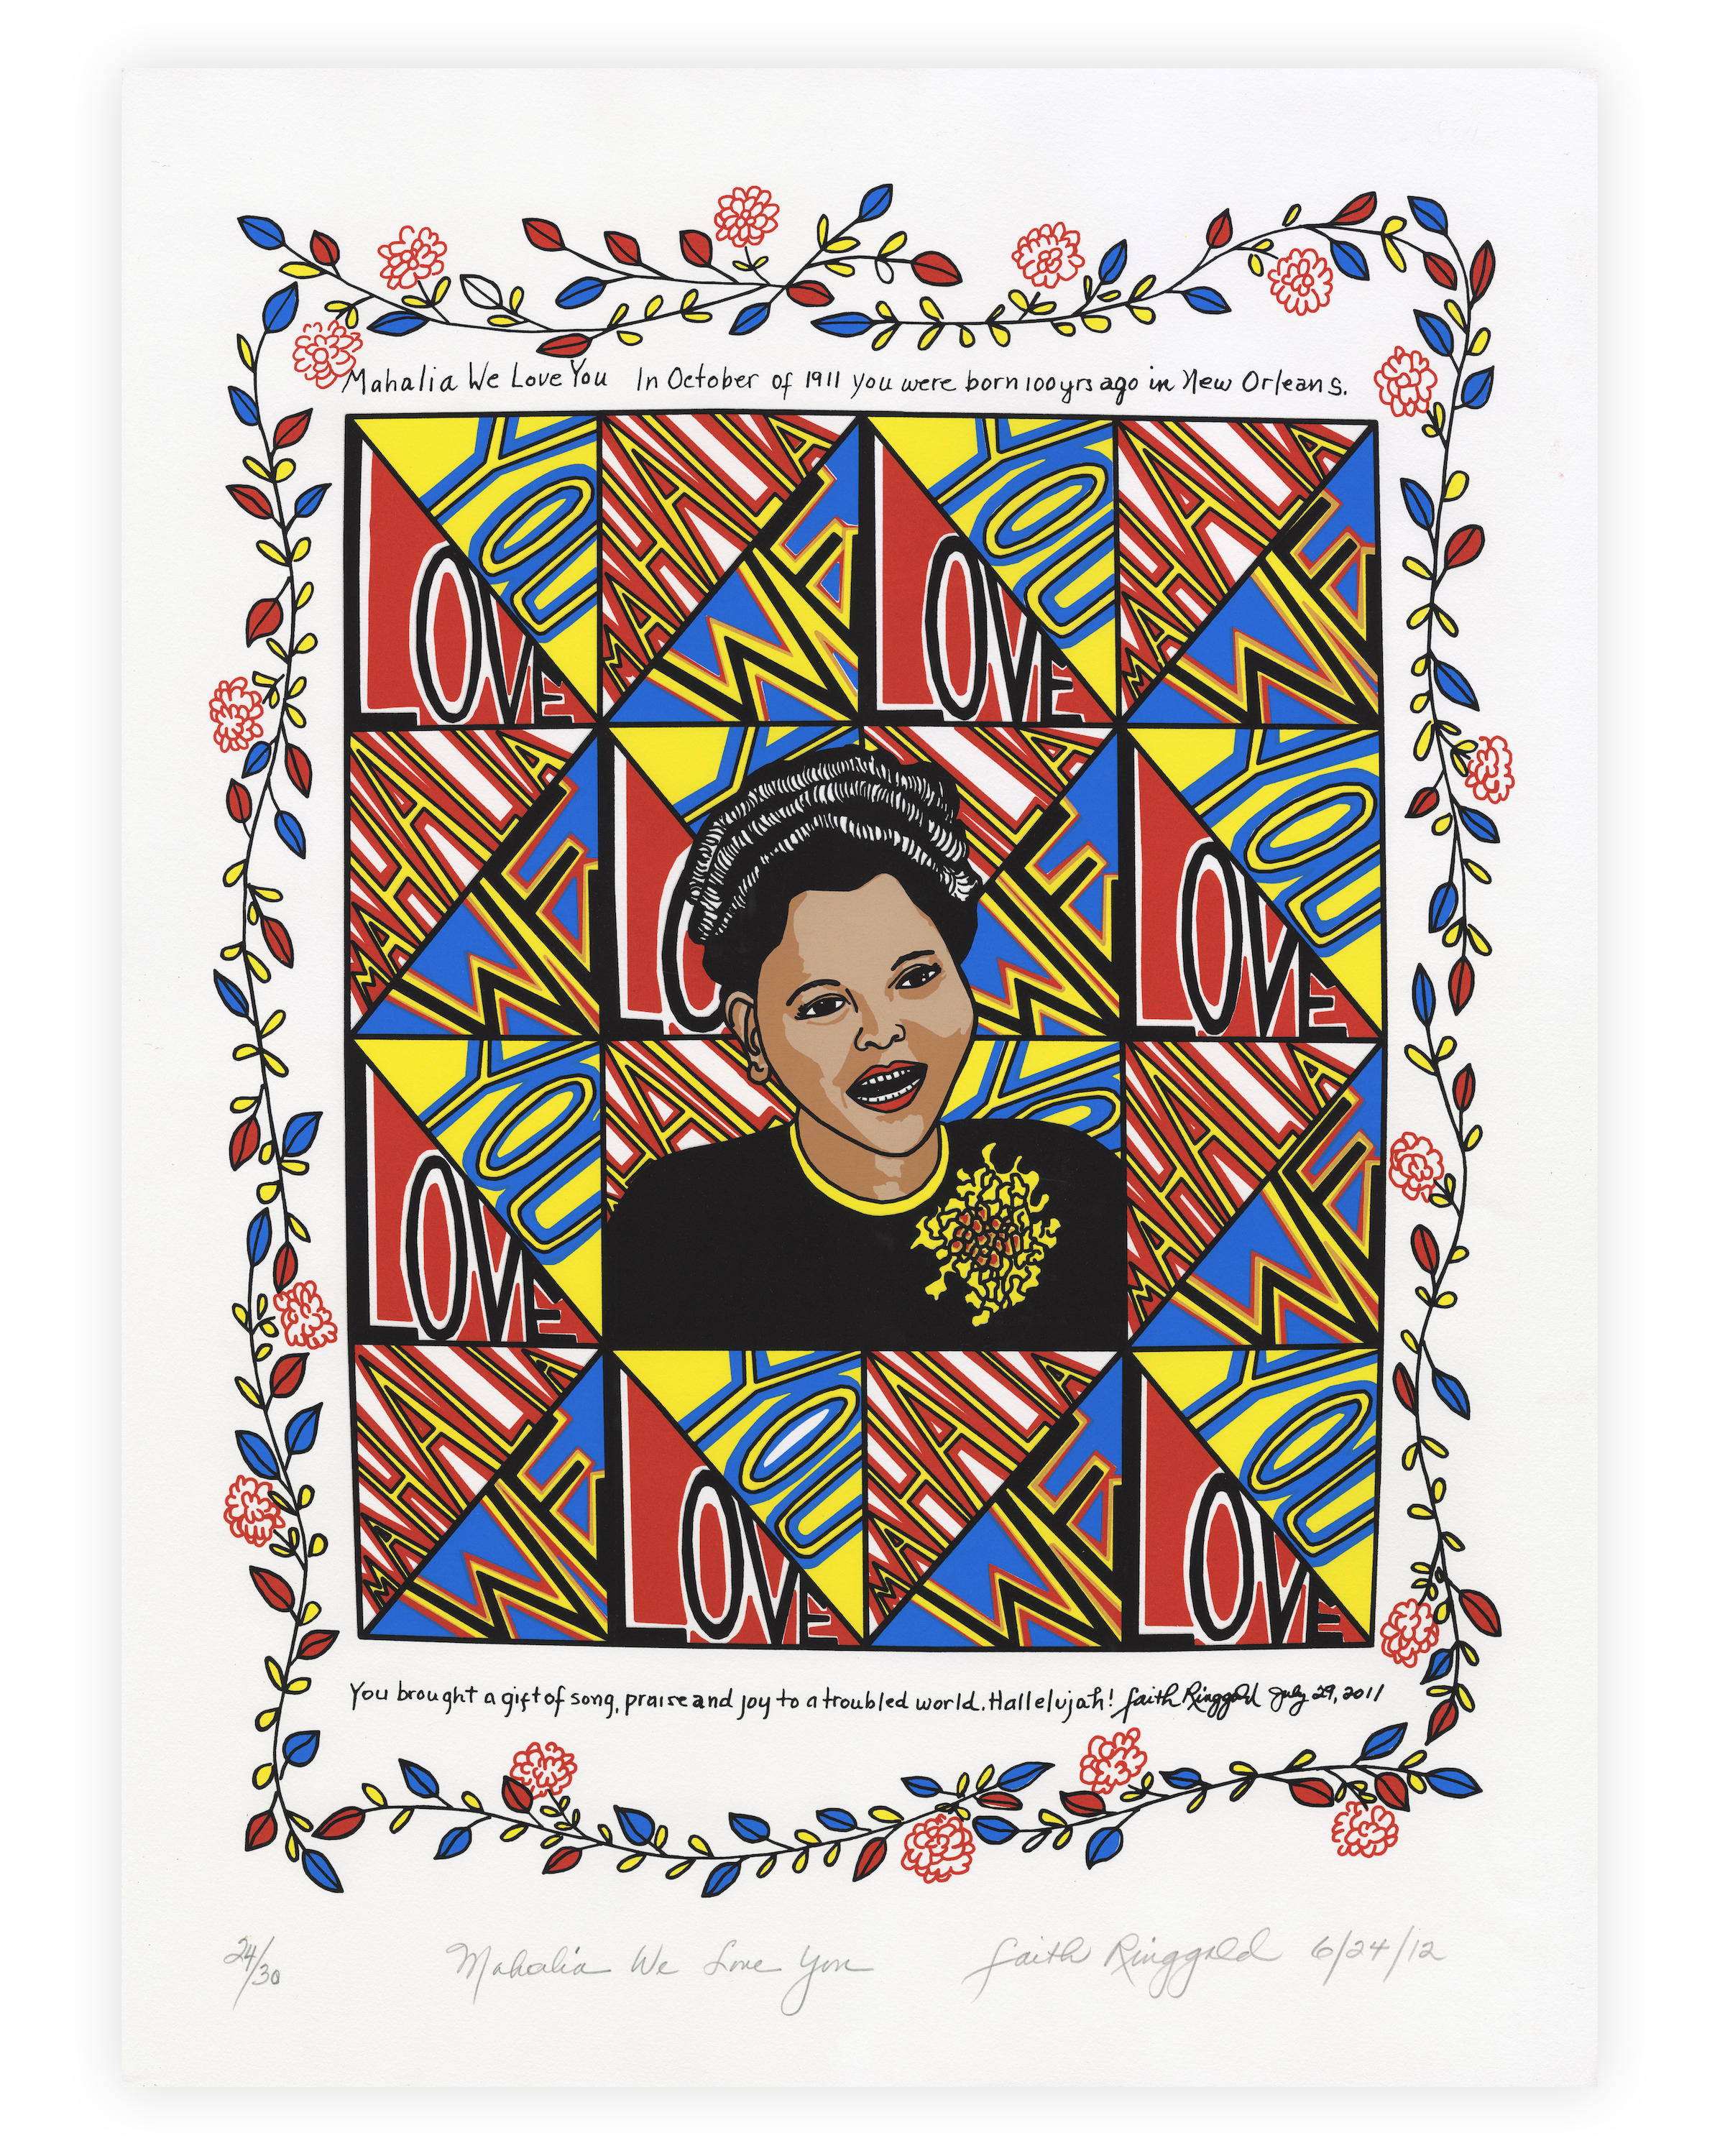 Faith Ringgold image: Mahalia we love you